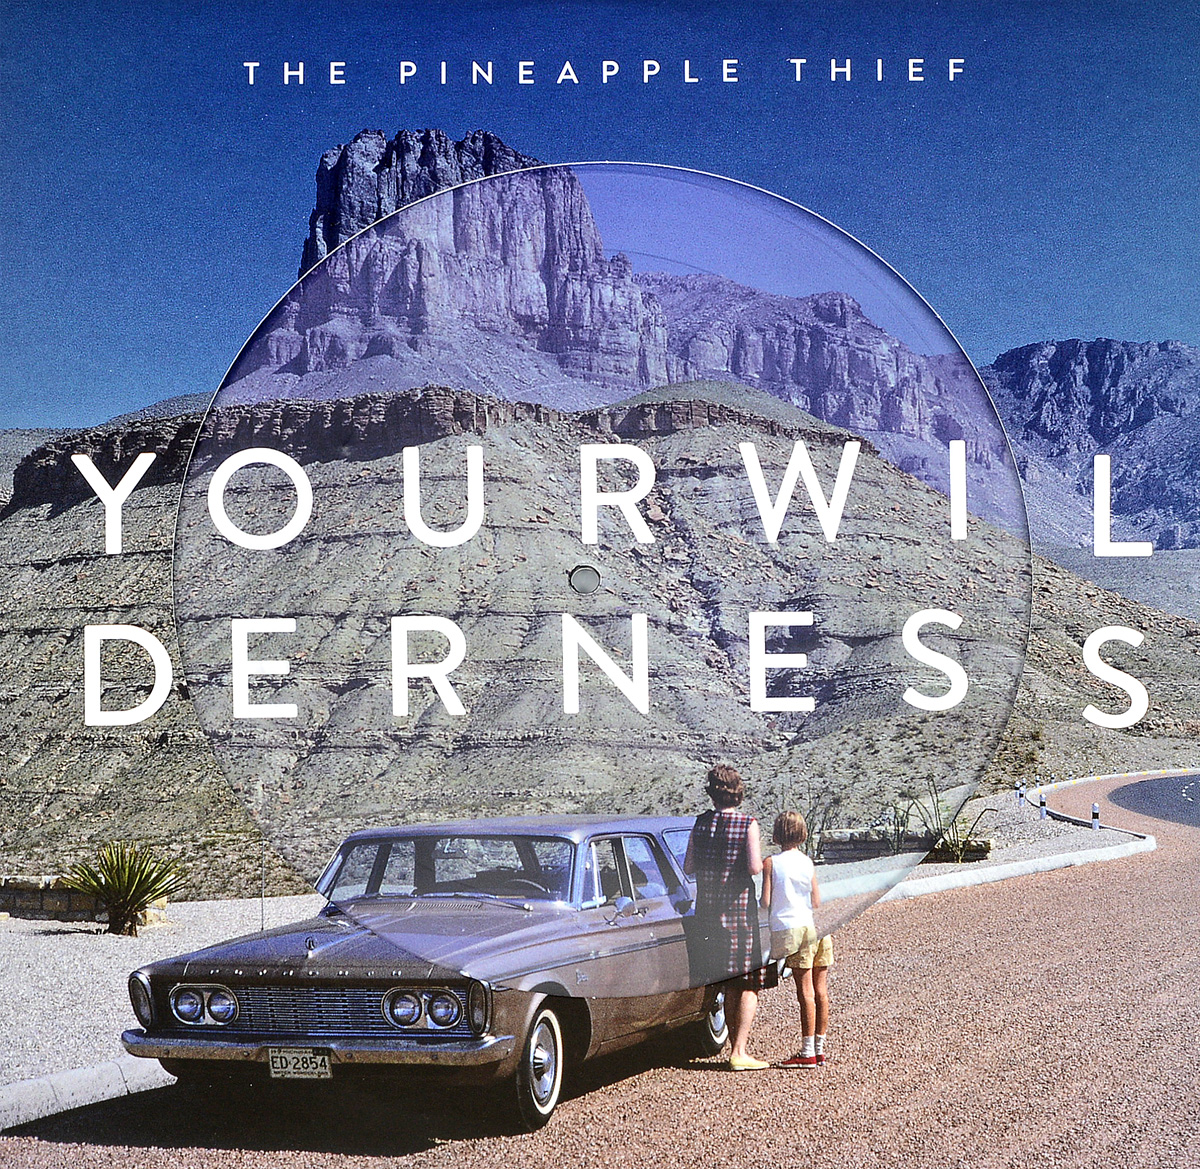 The Pineapple Thief THE PINEAPPLE THIEF. Your Wilderness (LP) the good thief